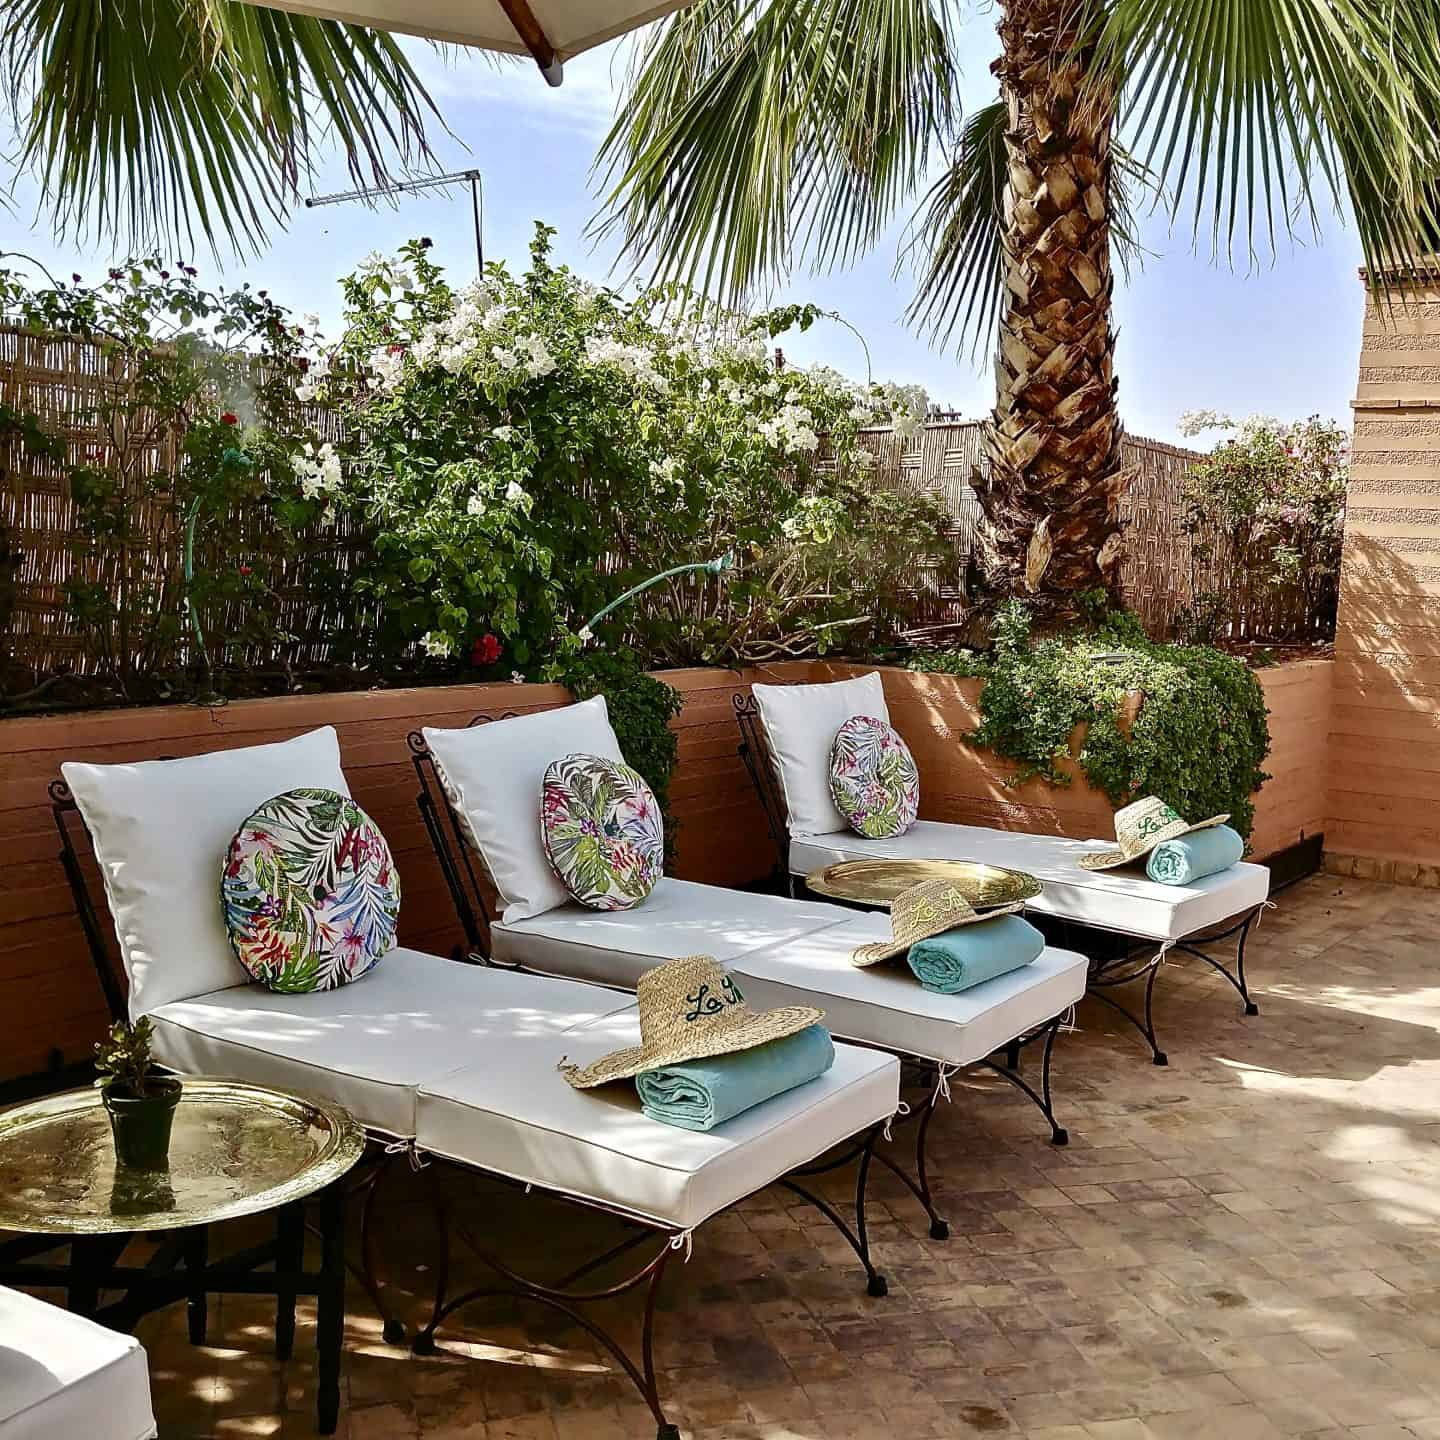 Lunch at La Sultana Hotel Marrakech